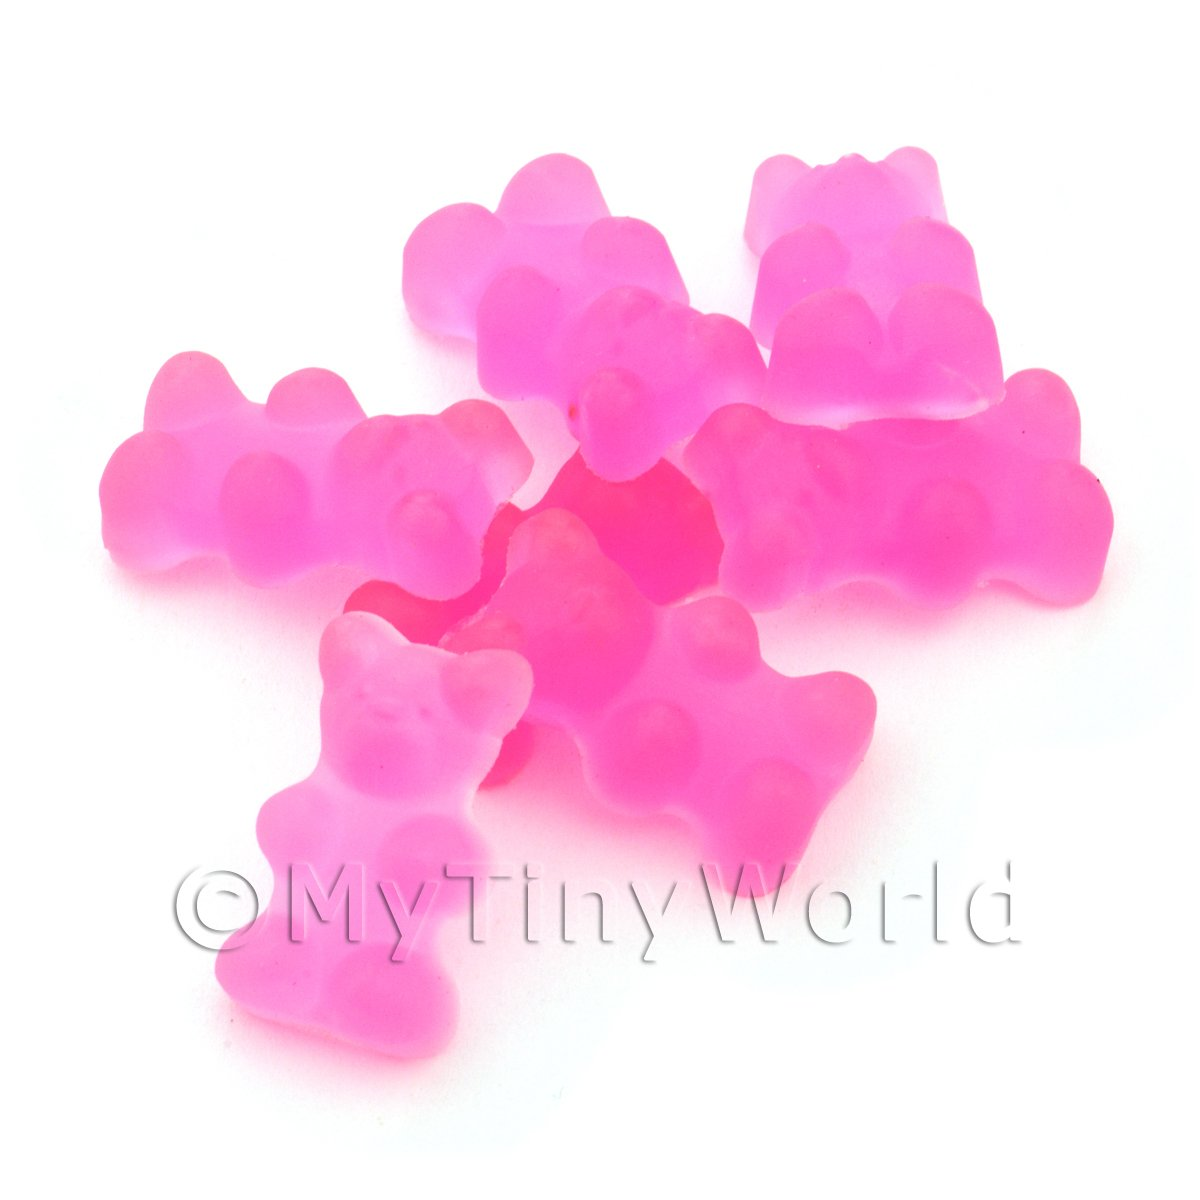 Translucent Light Pink Jelly Bear Charm For Jewellery